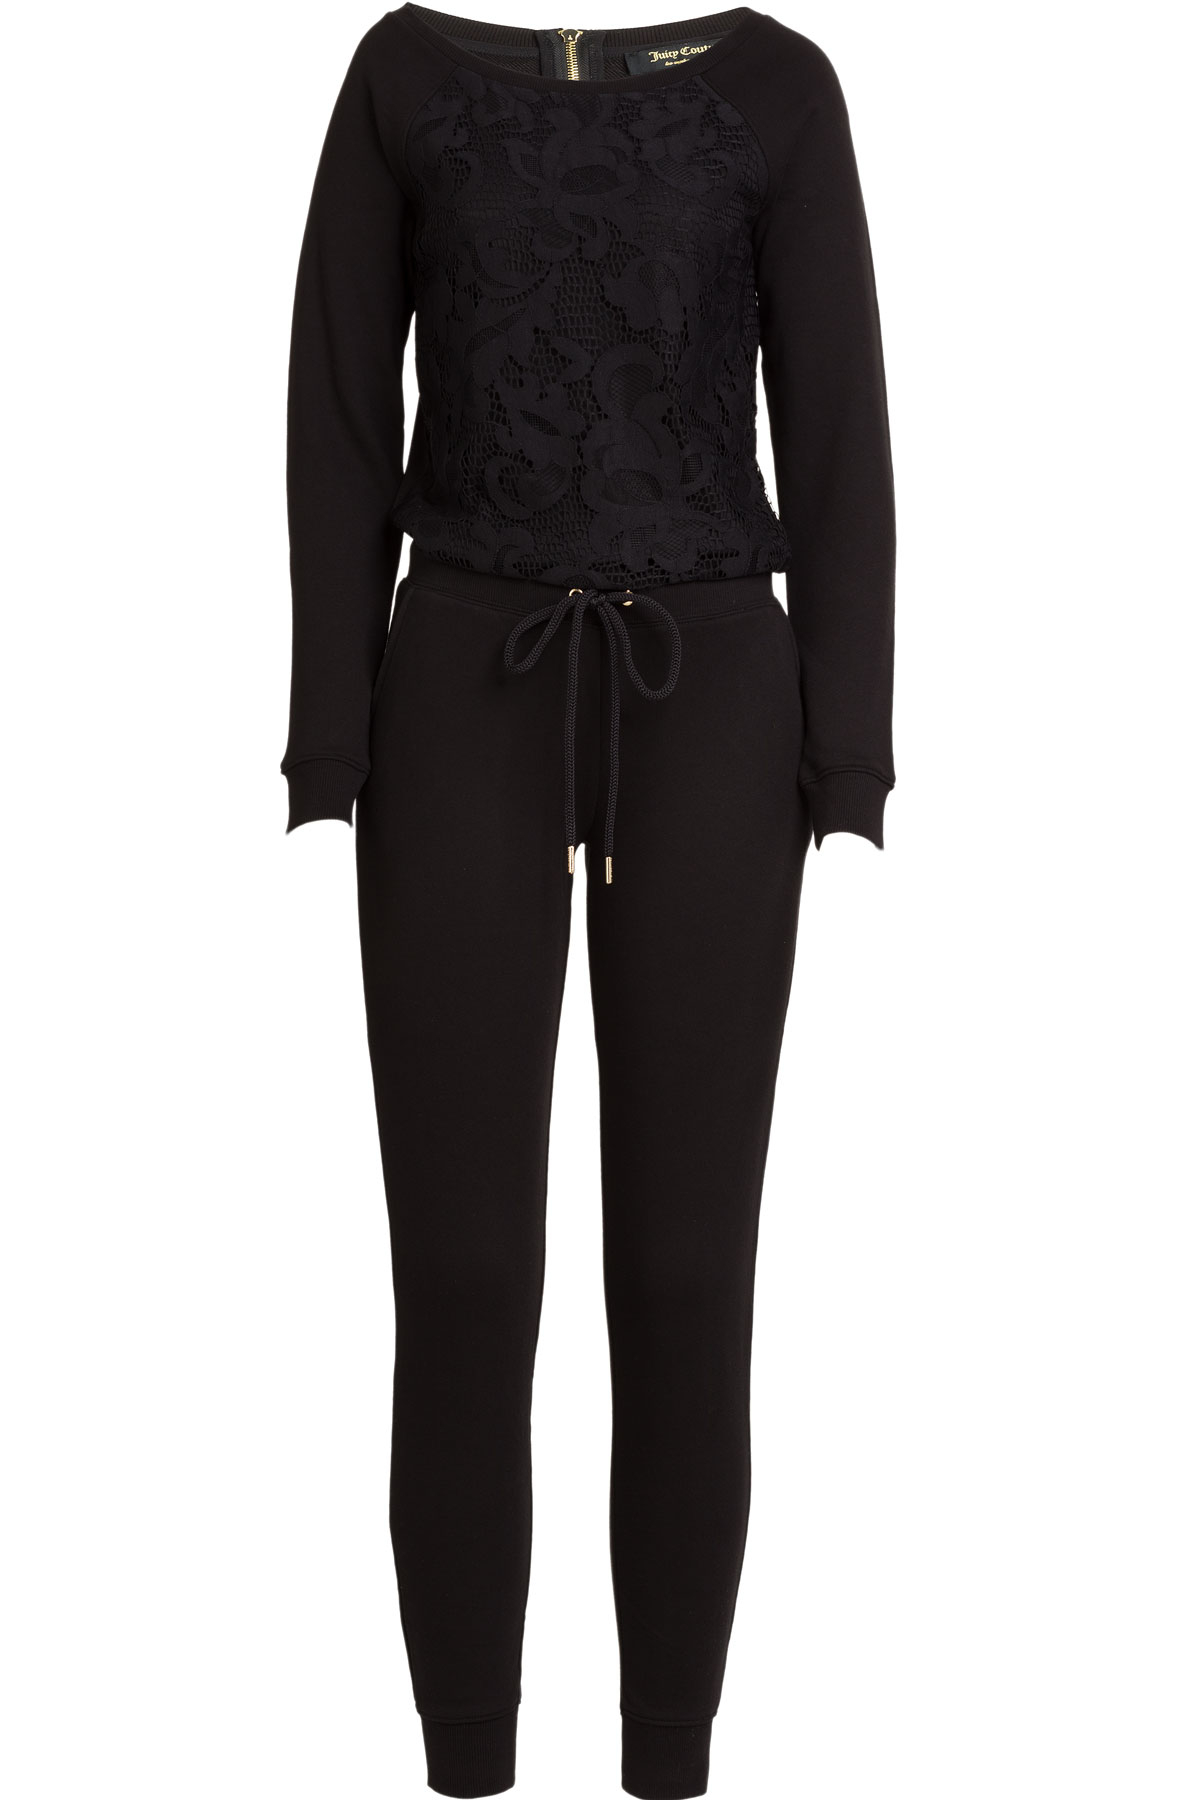 Juicy couture Cotton Jumpsuit With Lace - Black in Black | Lyst